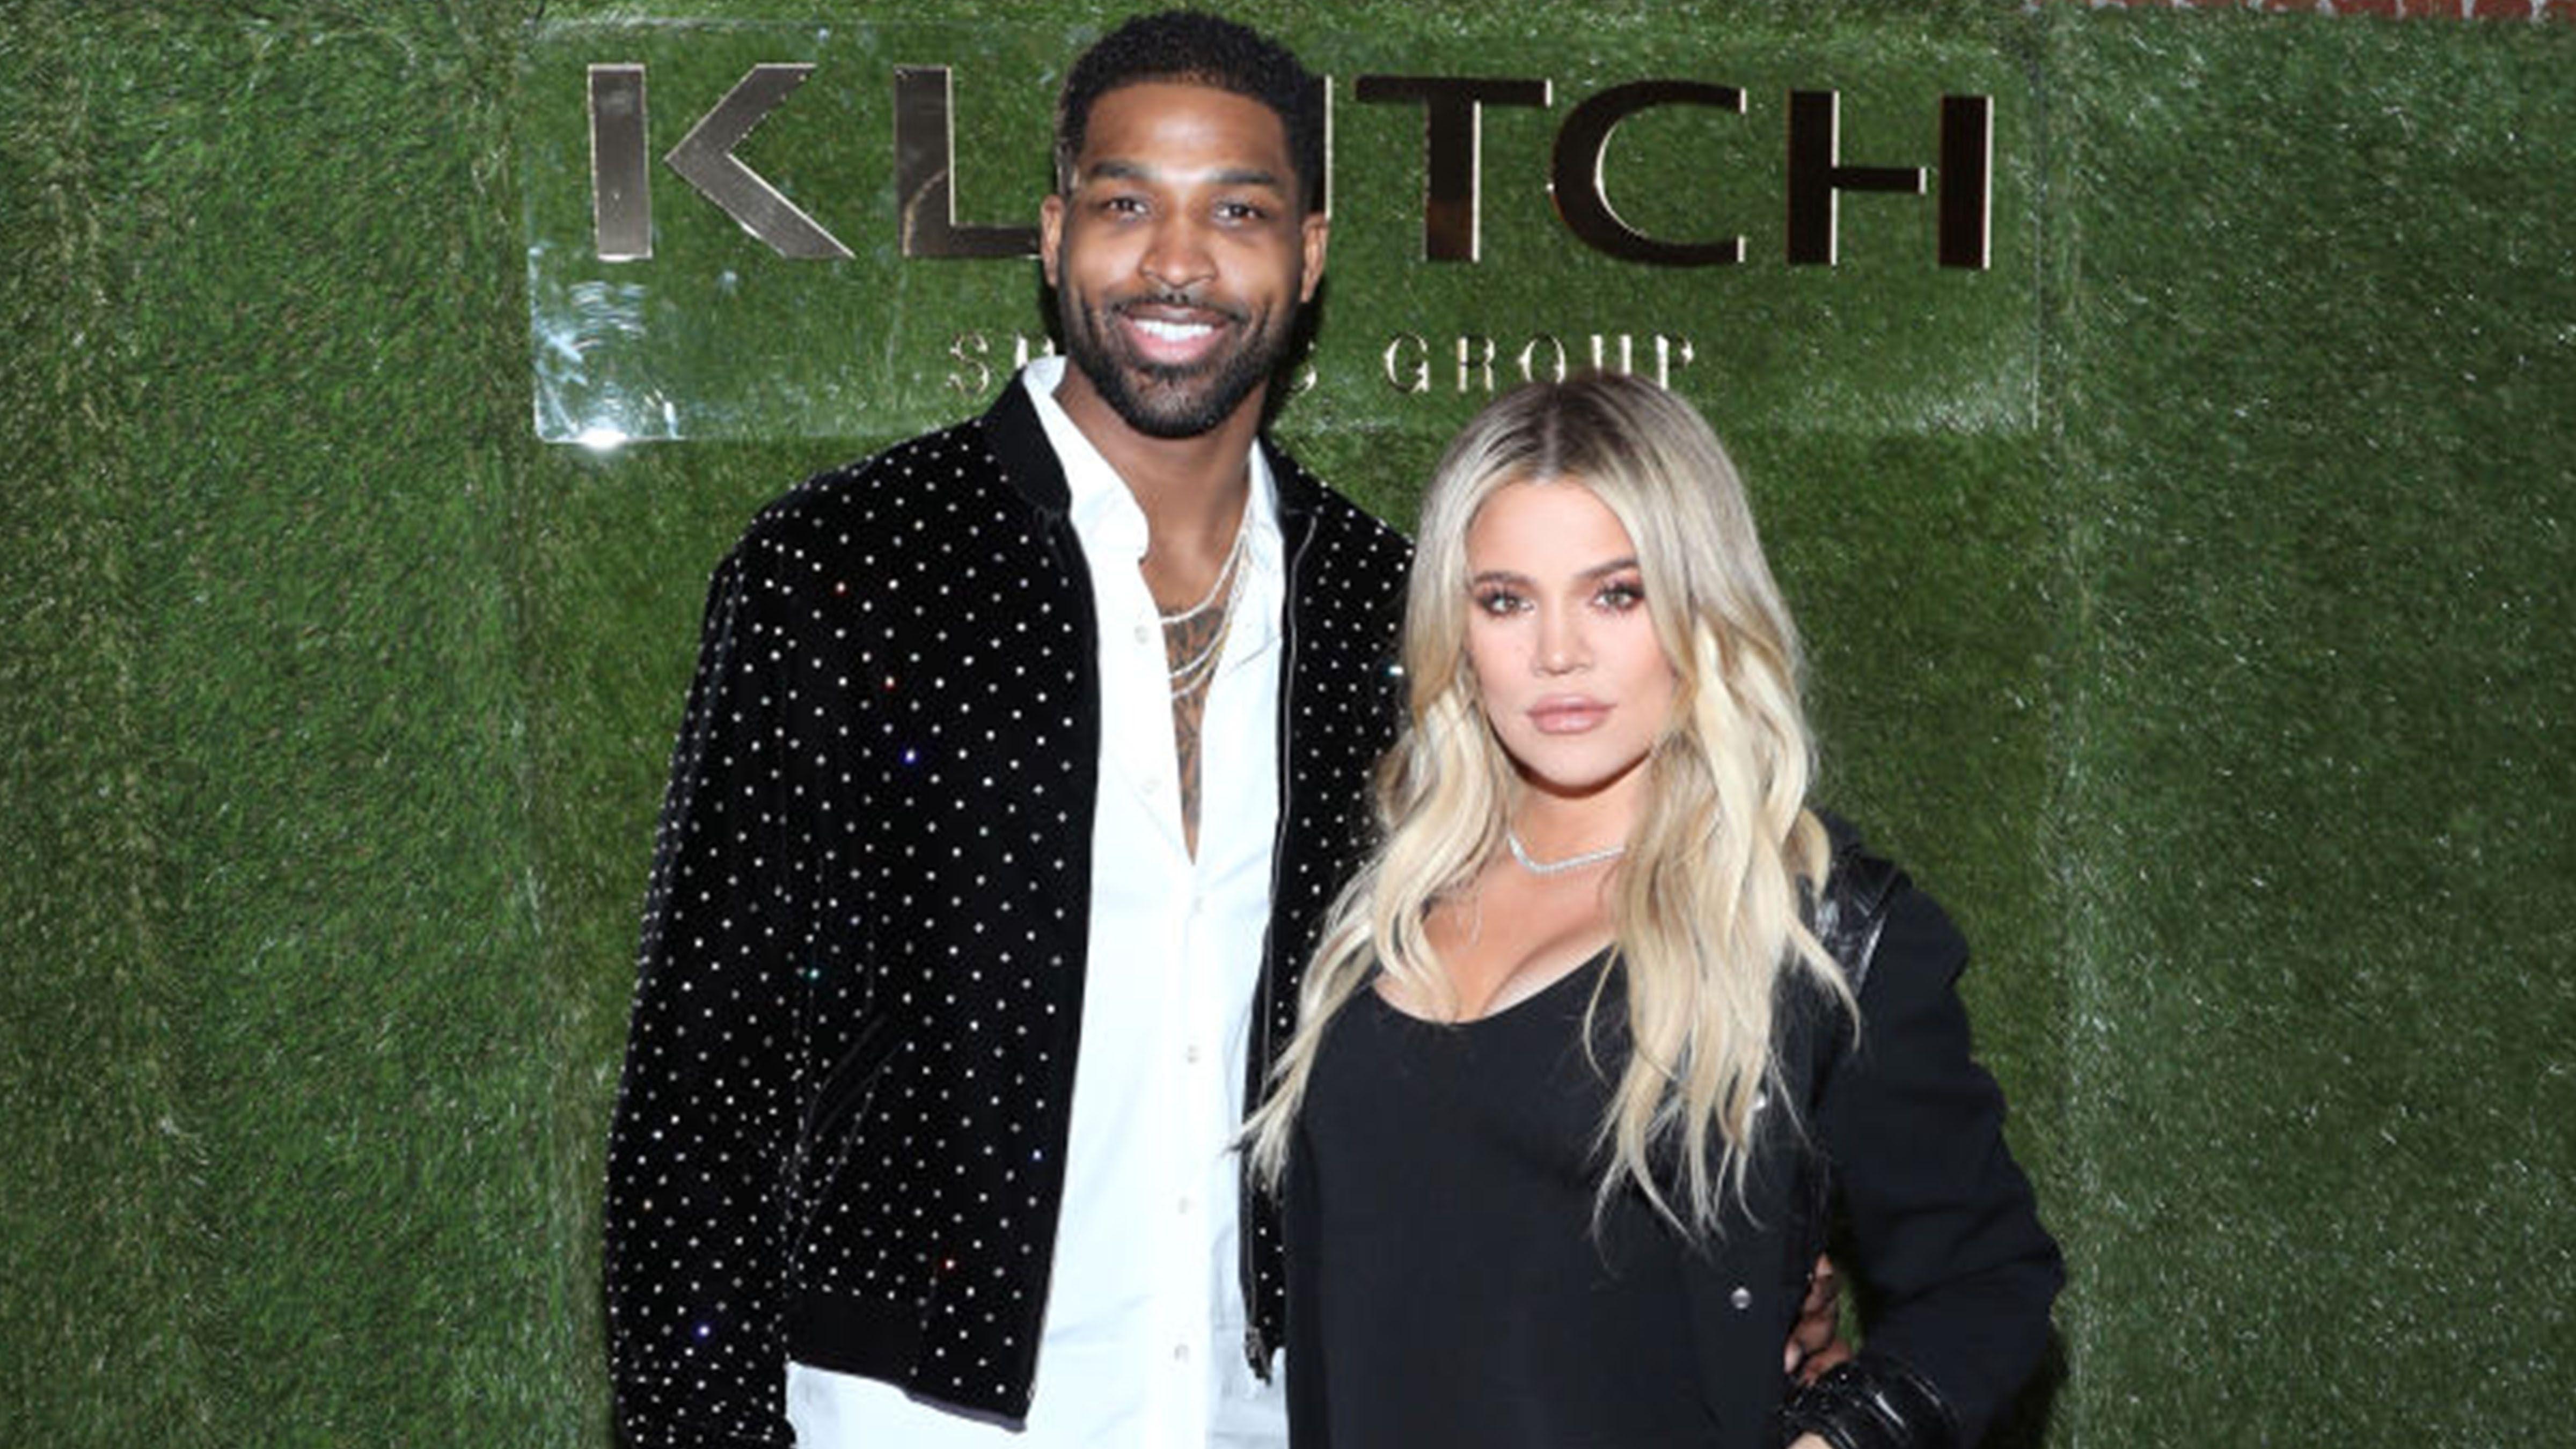 Welp, Khloé Kardashian Allegedly Wants to Reconcile With Tristan Thompson